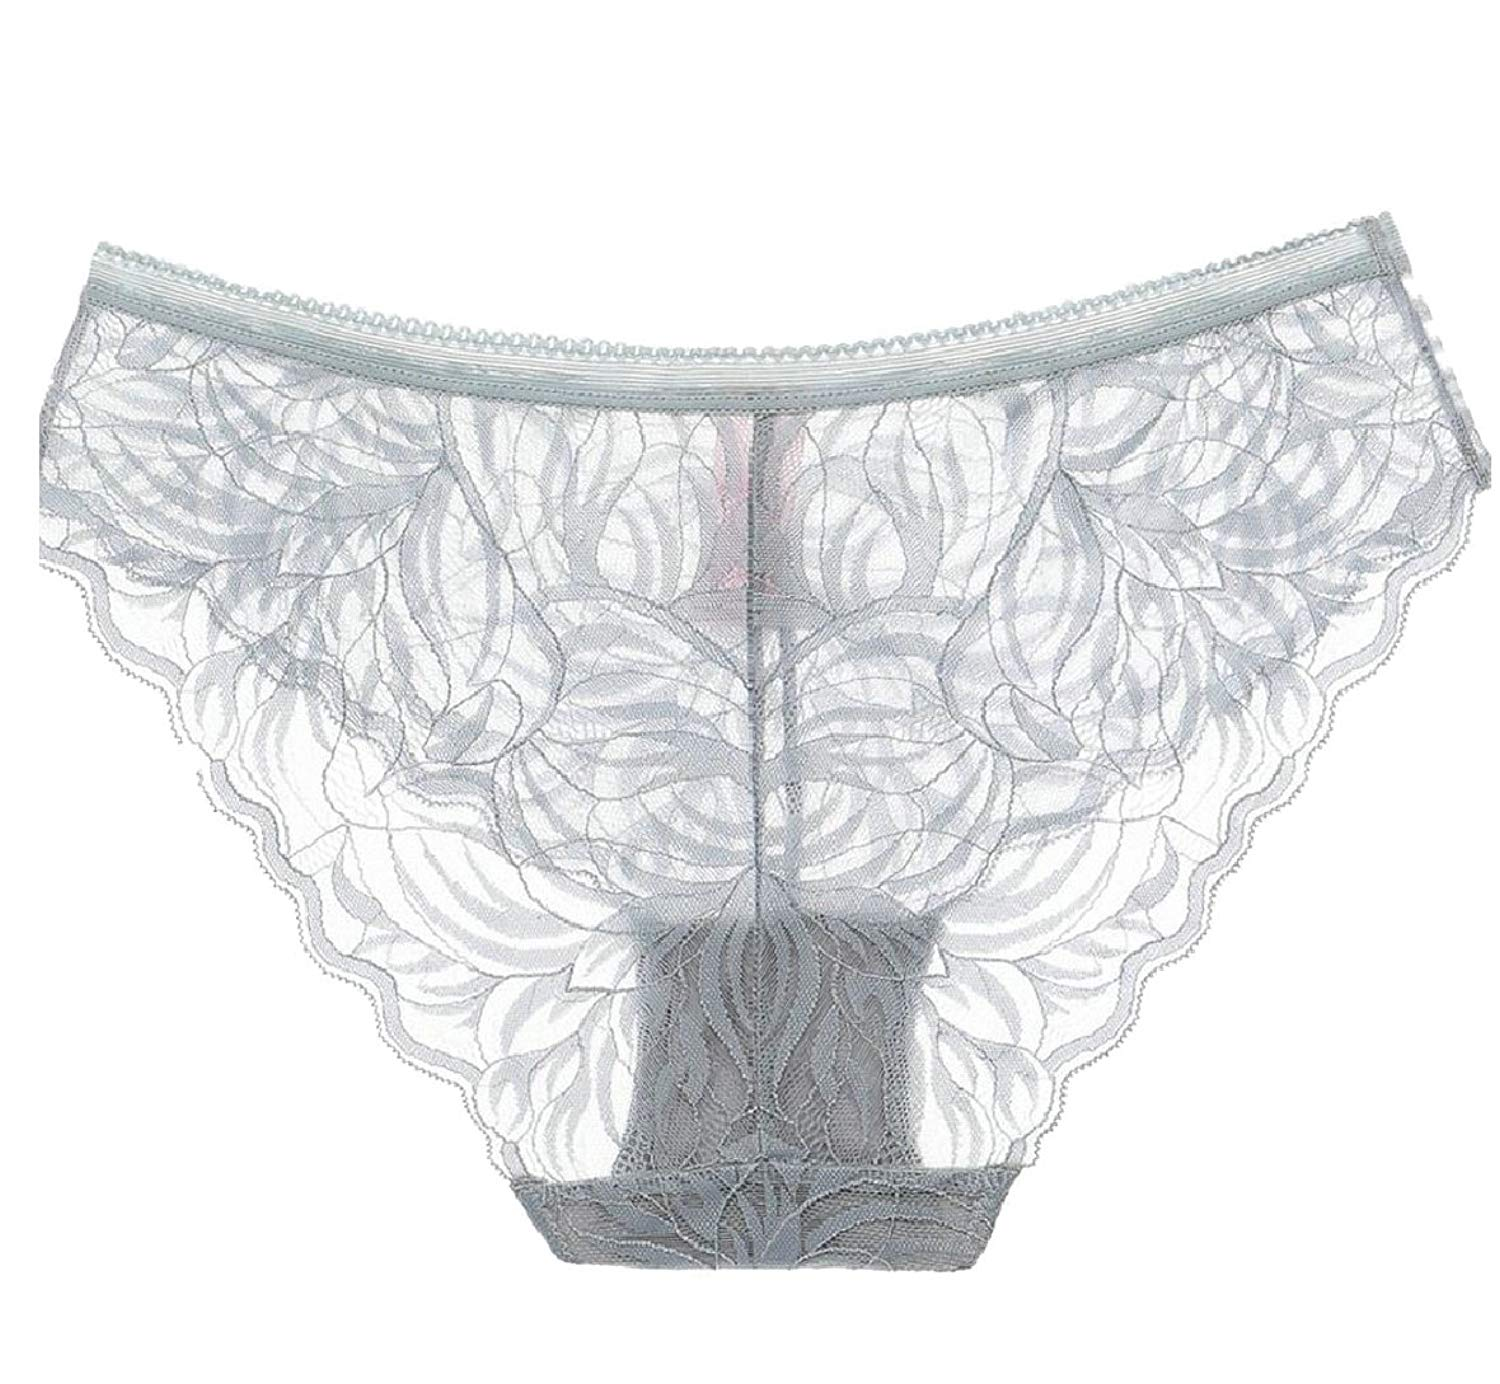 ef0dd45b7e8 Get Quotations · M&S&W Women's Lace Panties Soft Comfortable Lace Underwear  Brief Panties